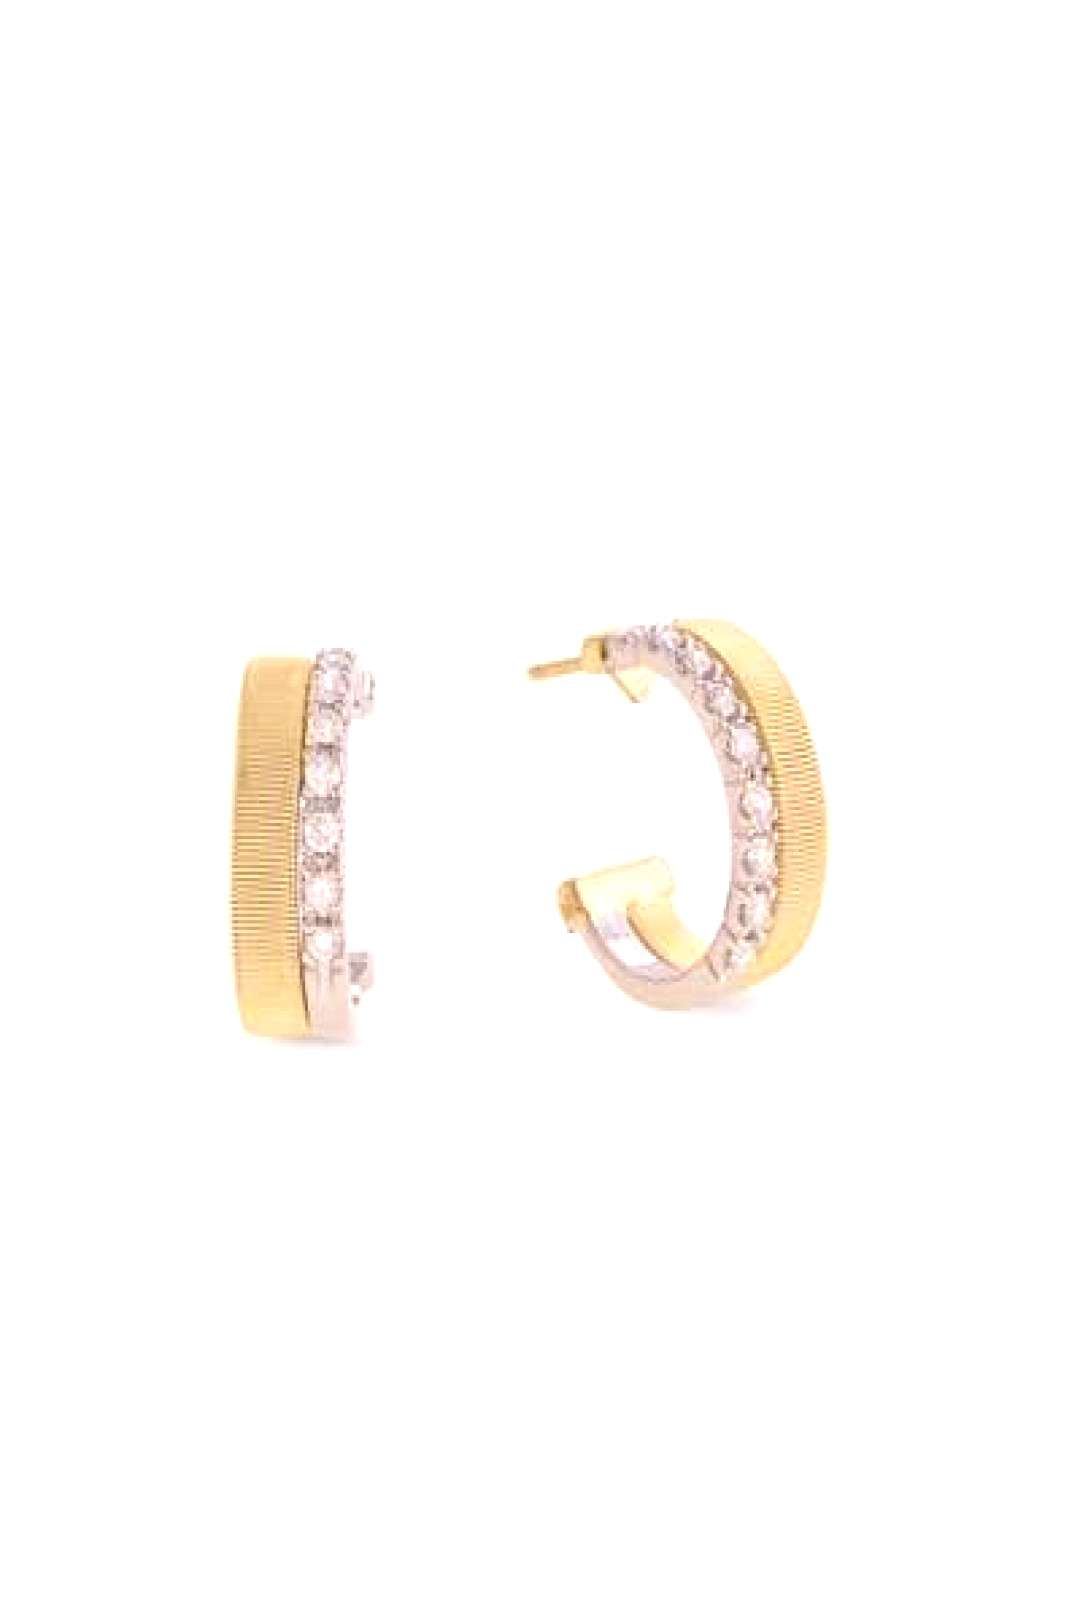 Marco Bicego Masai 18K White amp Yellow Gold Coil Hoop Earrings with Diamonds